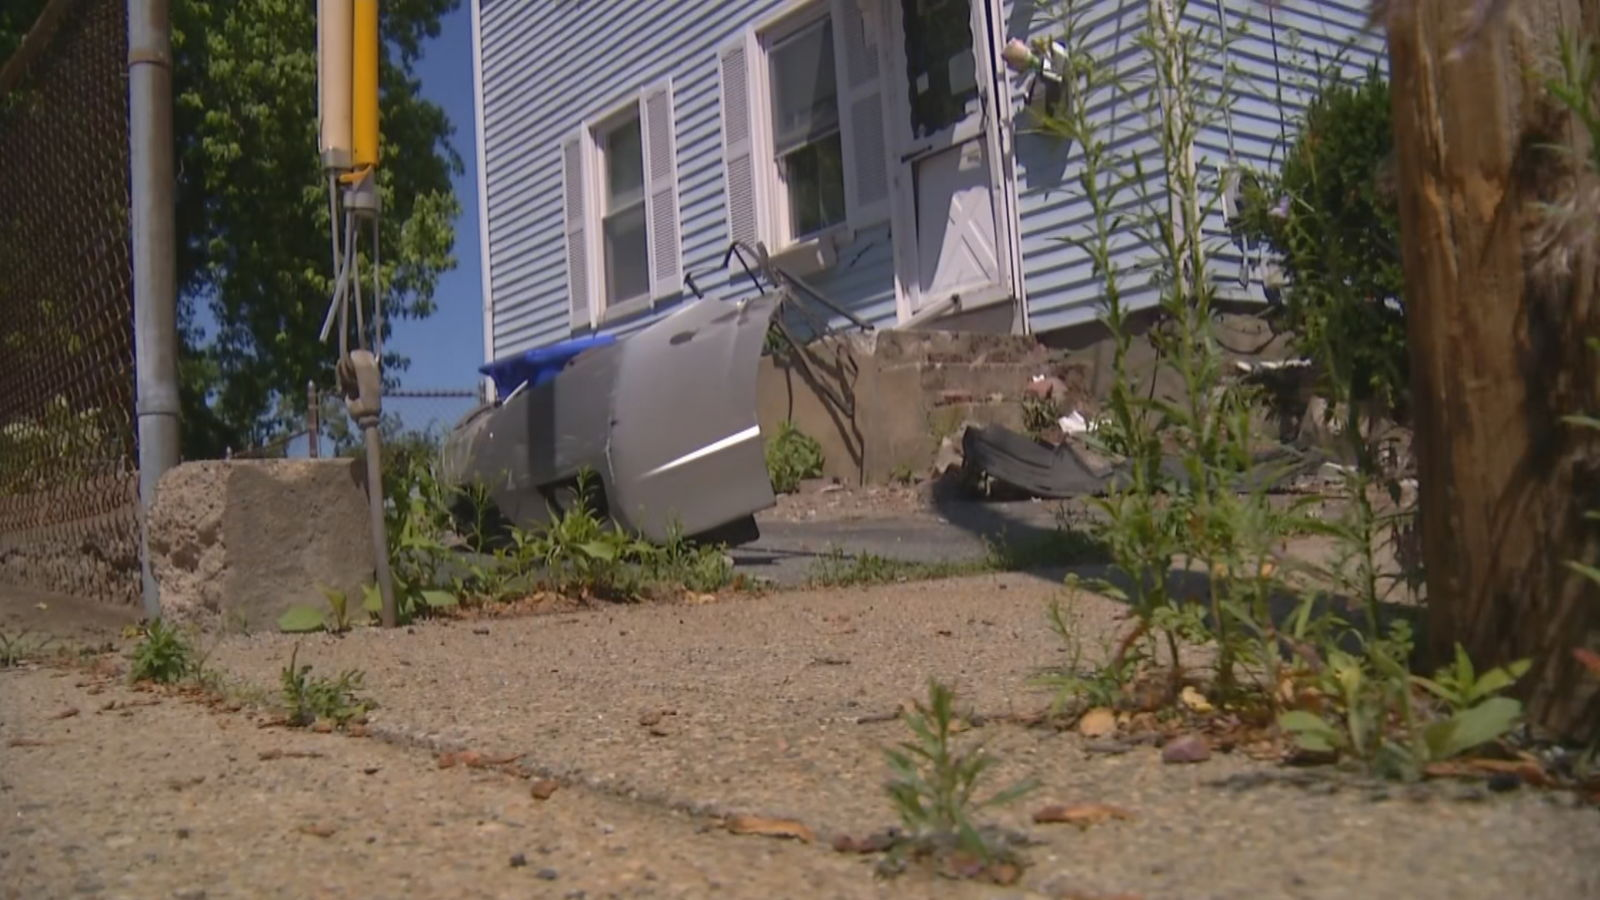 Pawtucket police responded to Hurley Avenue Saturday, June 15, 2019 after a woman lost control of her car and crashed into the concrete stairs of a home, causing the car to rollover. (WJAR)<p></p>